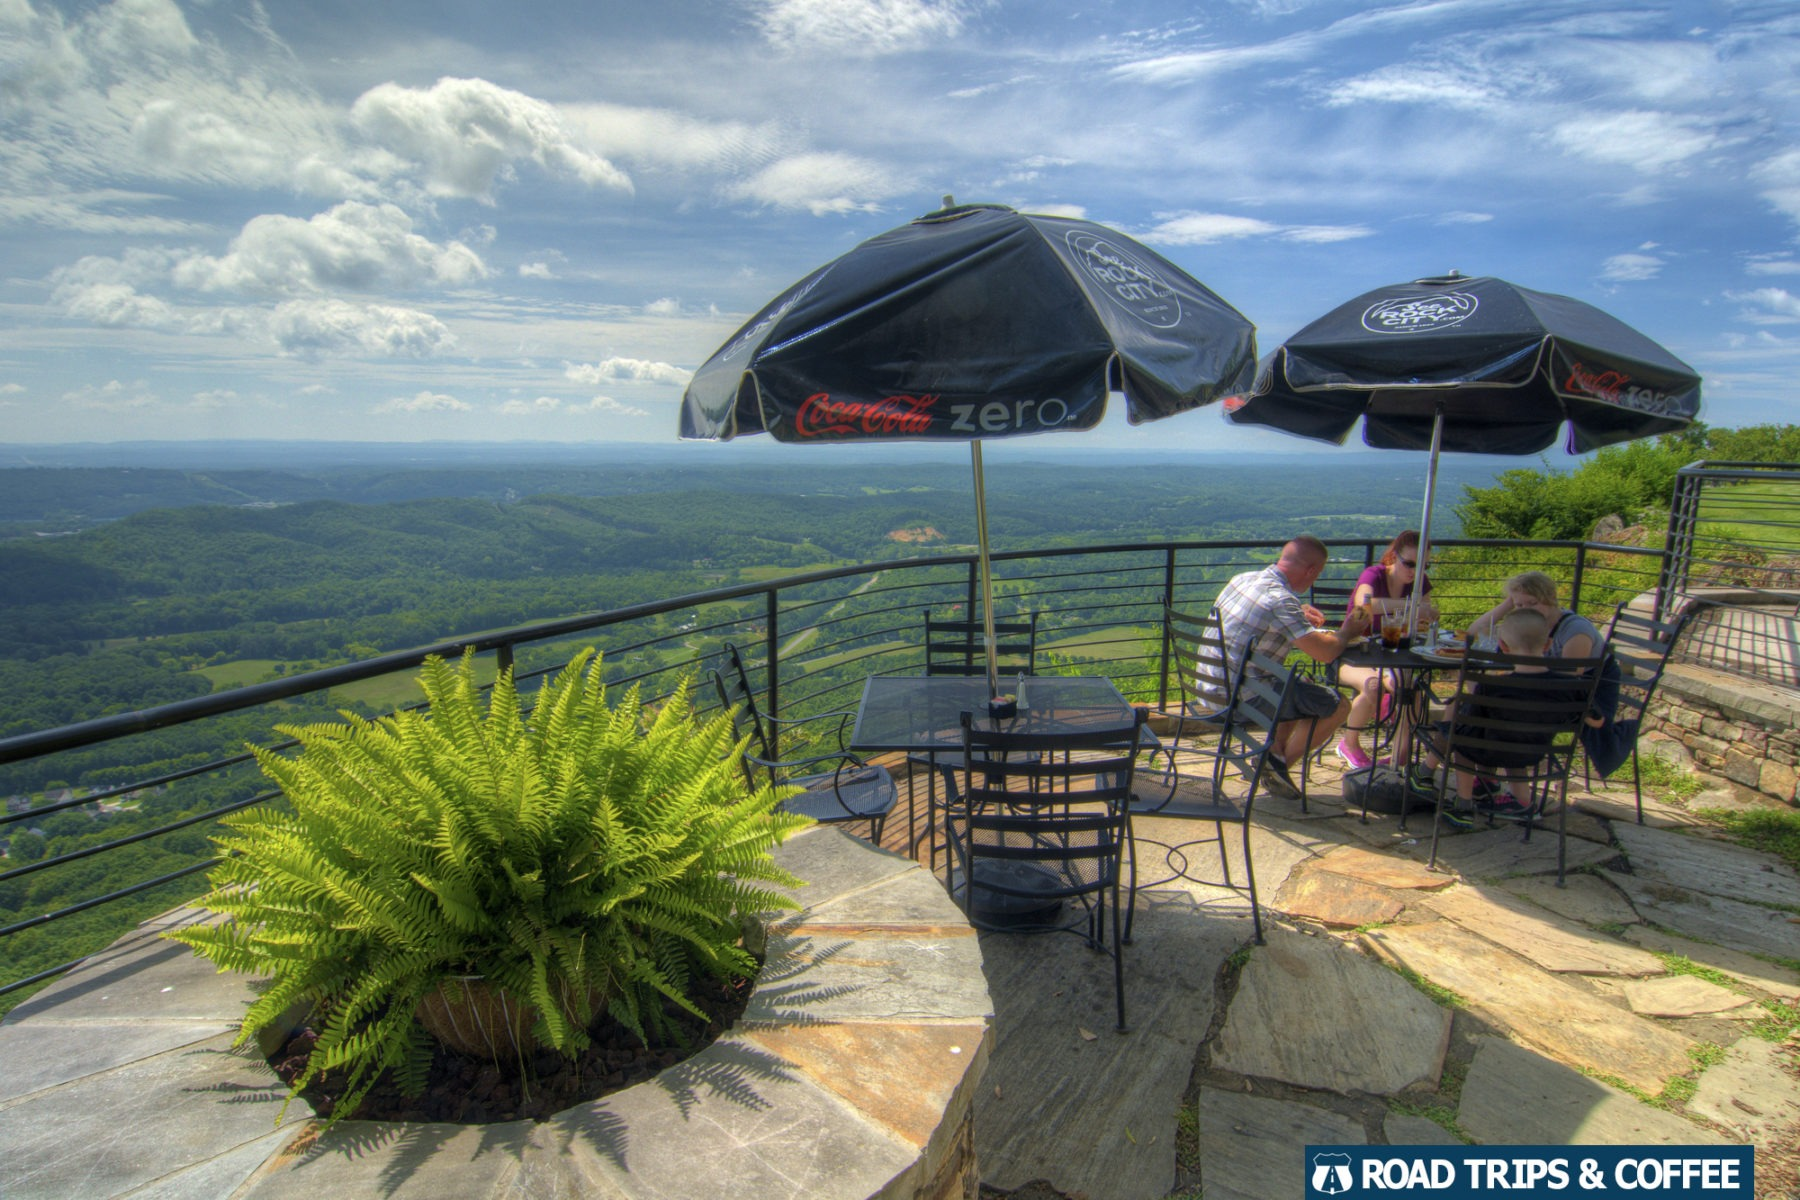 A couple of tables on a stone patio with a stunning view of the local landscape at Rock City in Lookout Mountain, Tennessee